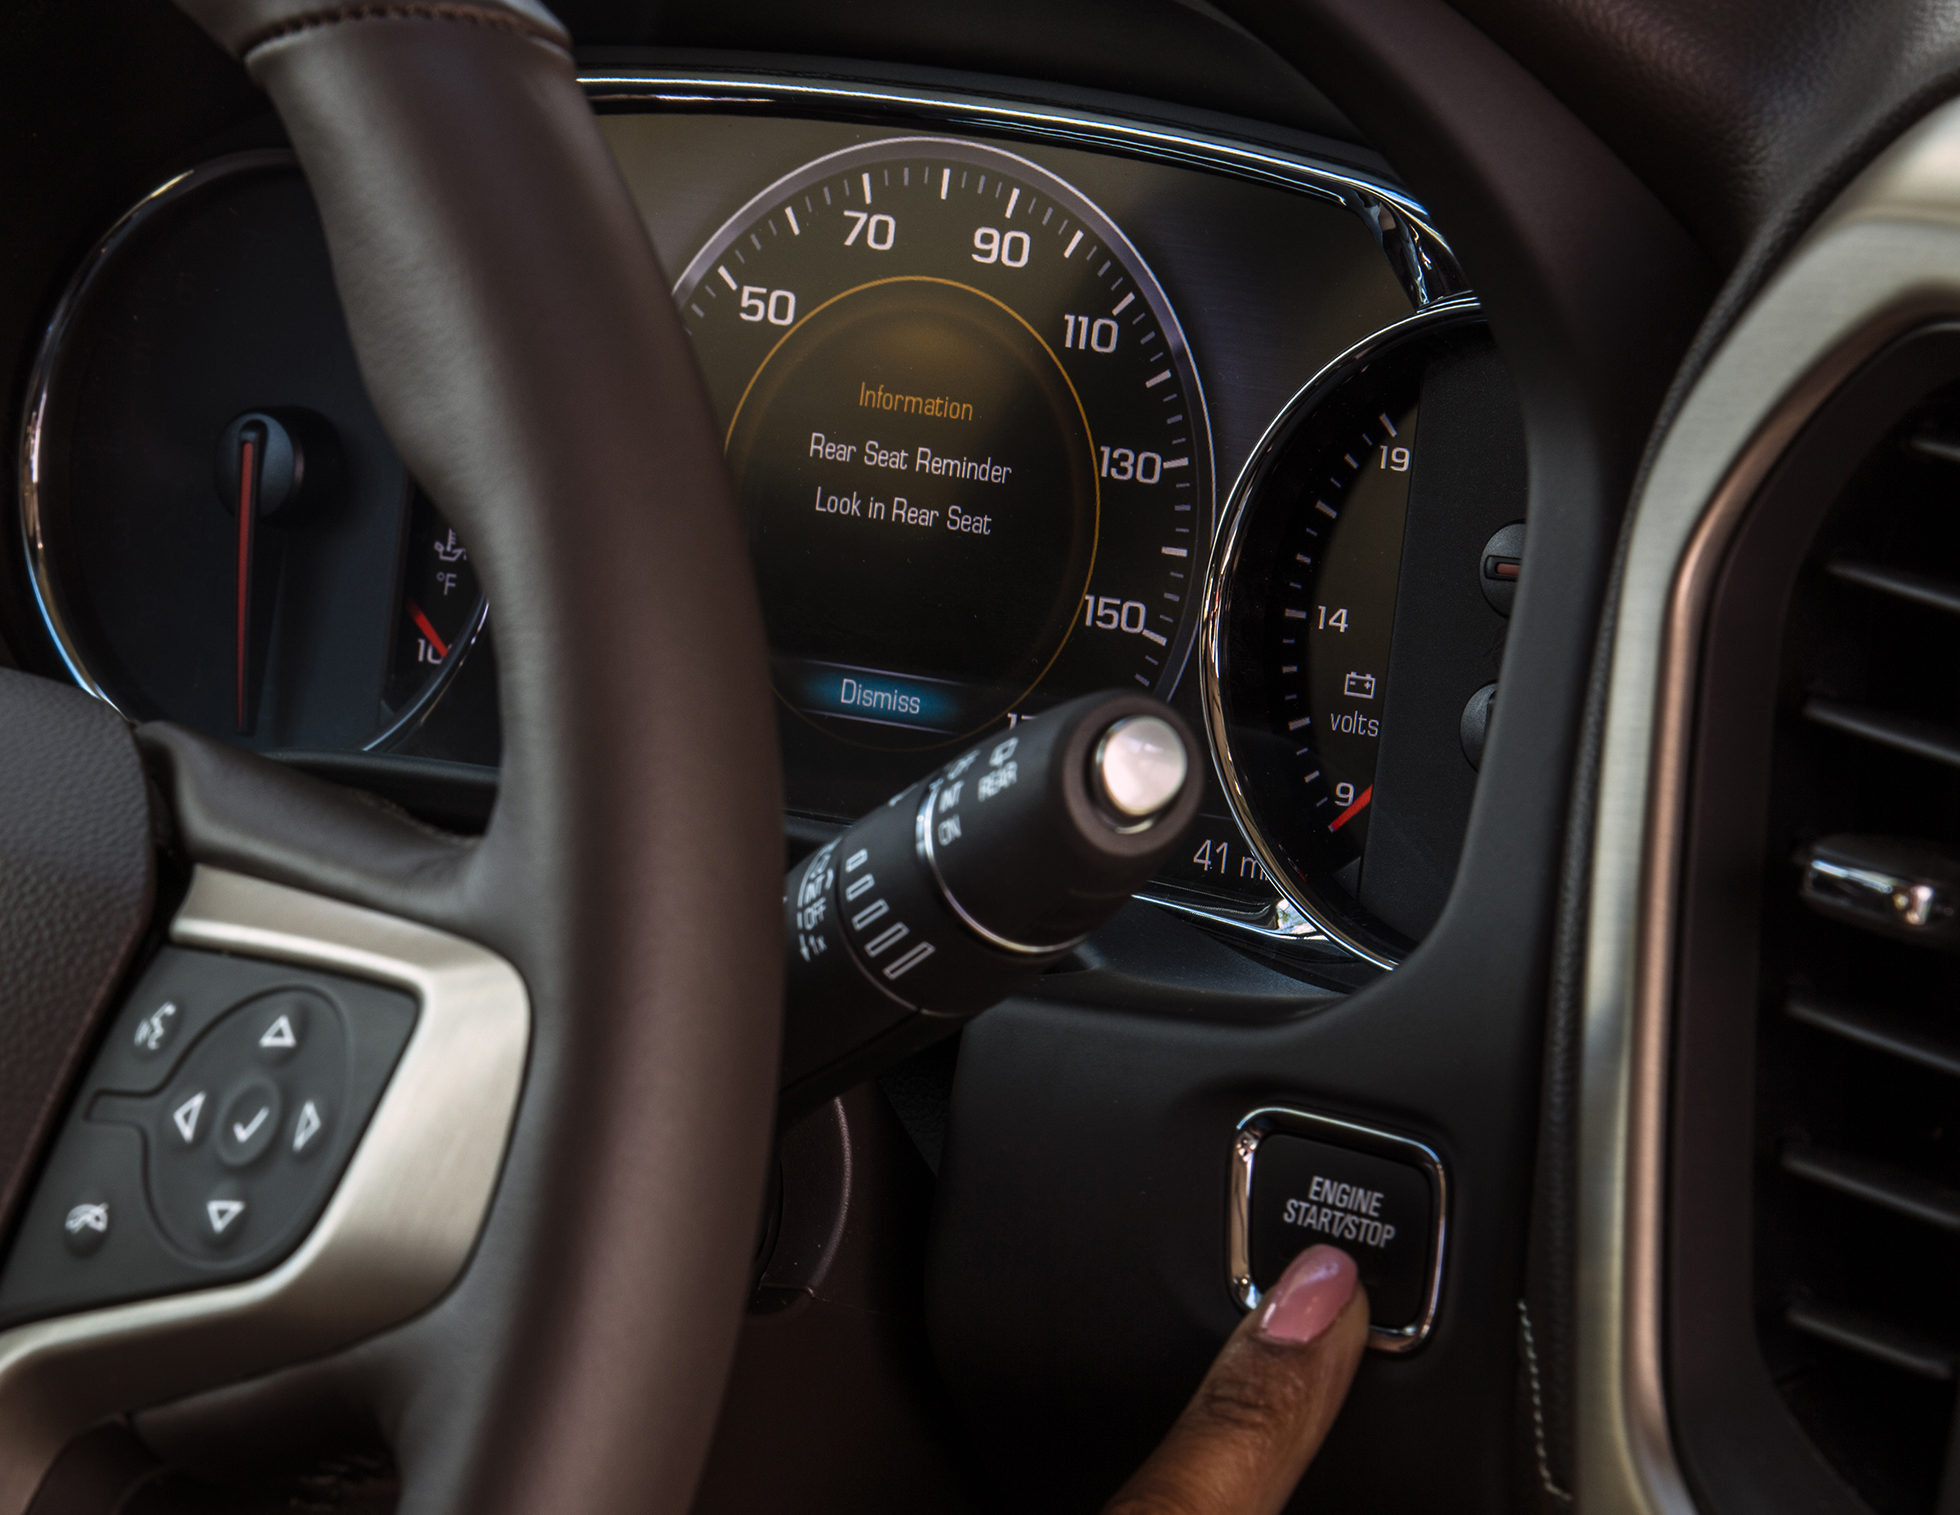 The rear seat alert system -- standard on the 2017 GMC Acadia and coming to more General Motors models -- is actually tied to the crossover's rear doors and engine, not the seat, GM said Monday. (Provided by General Motors/© General Motors)